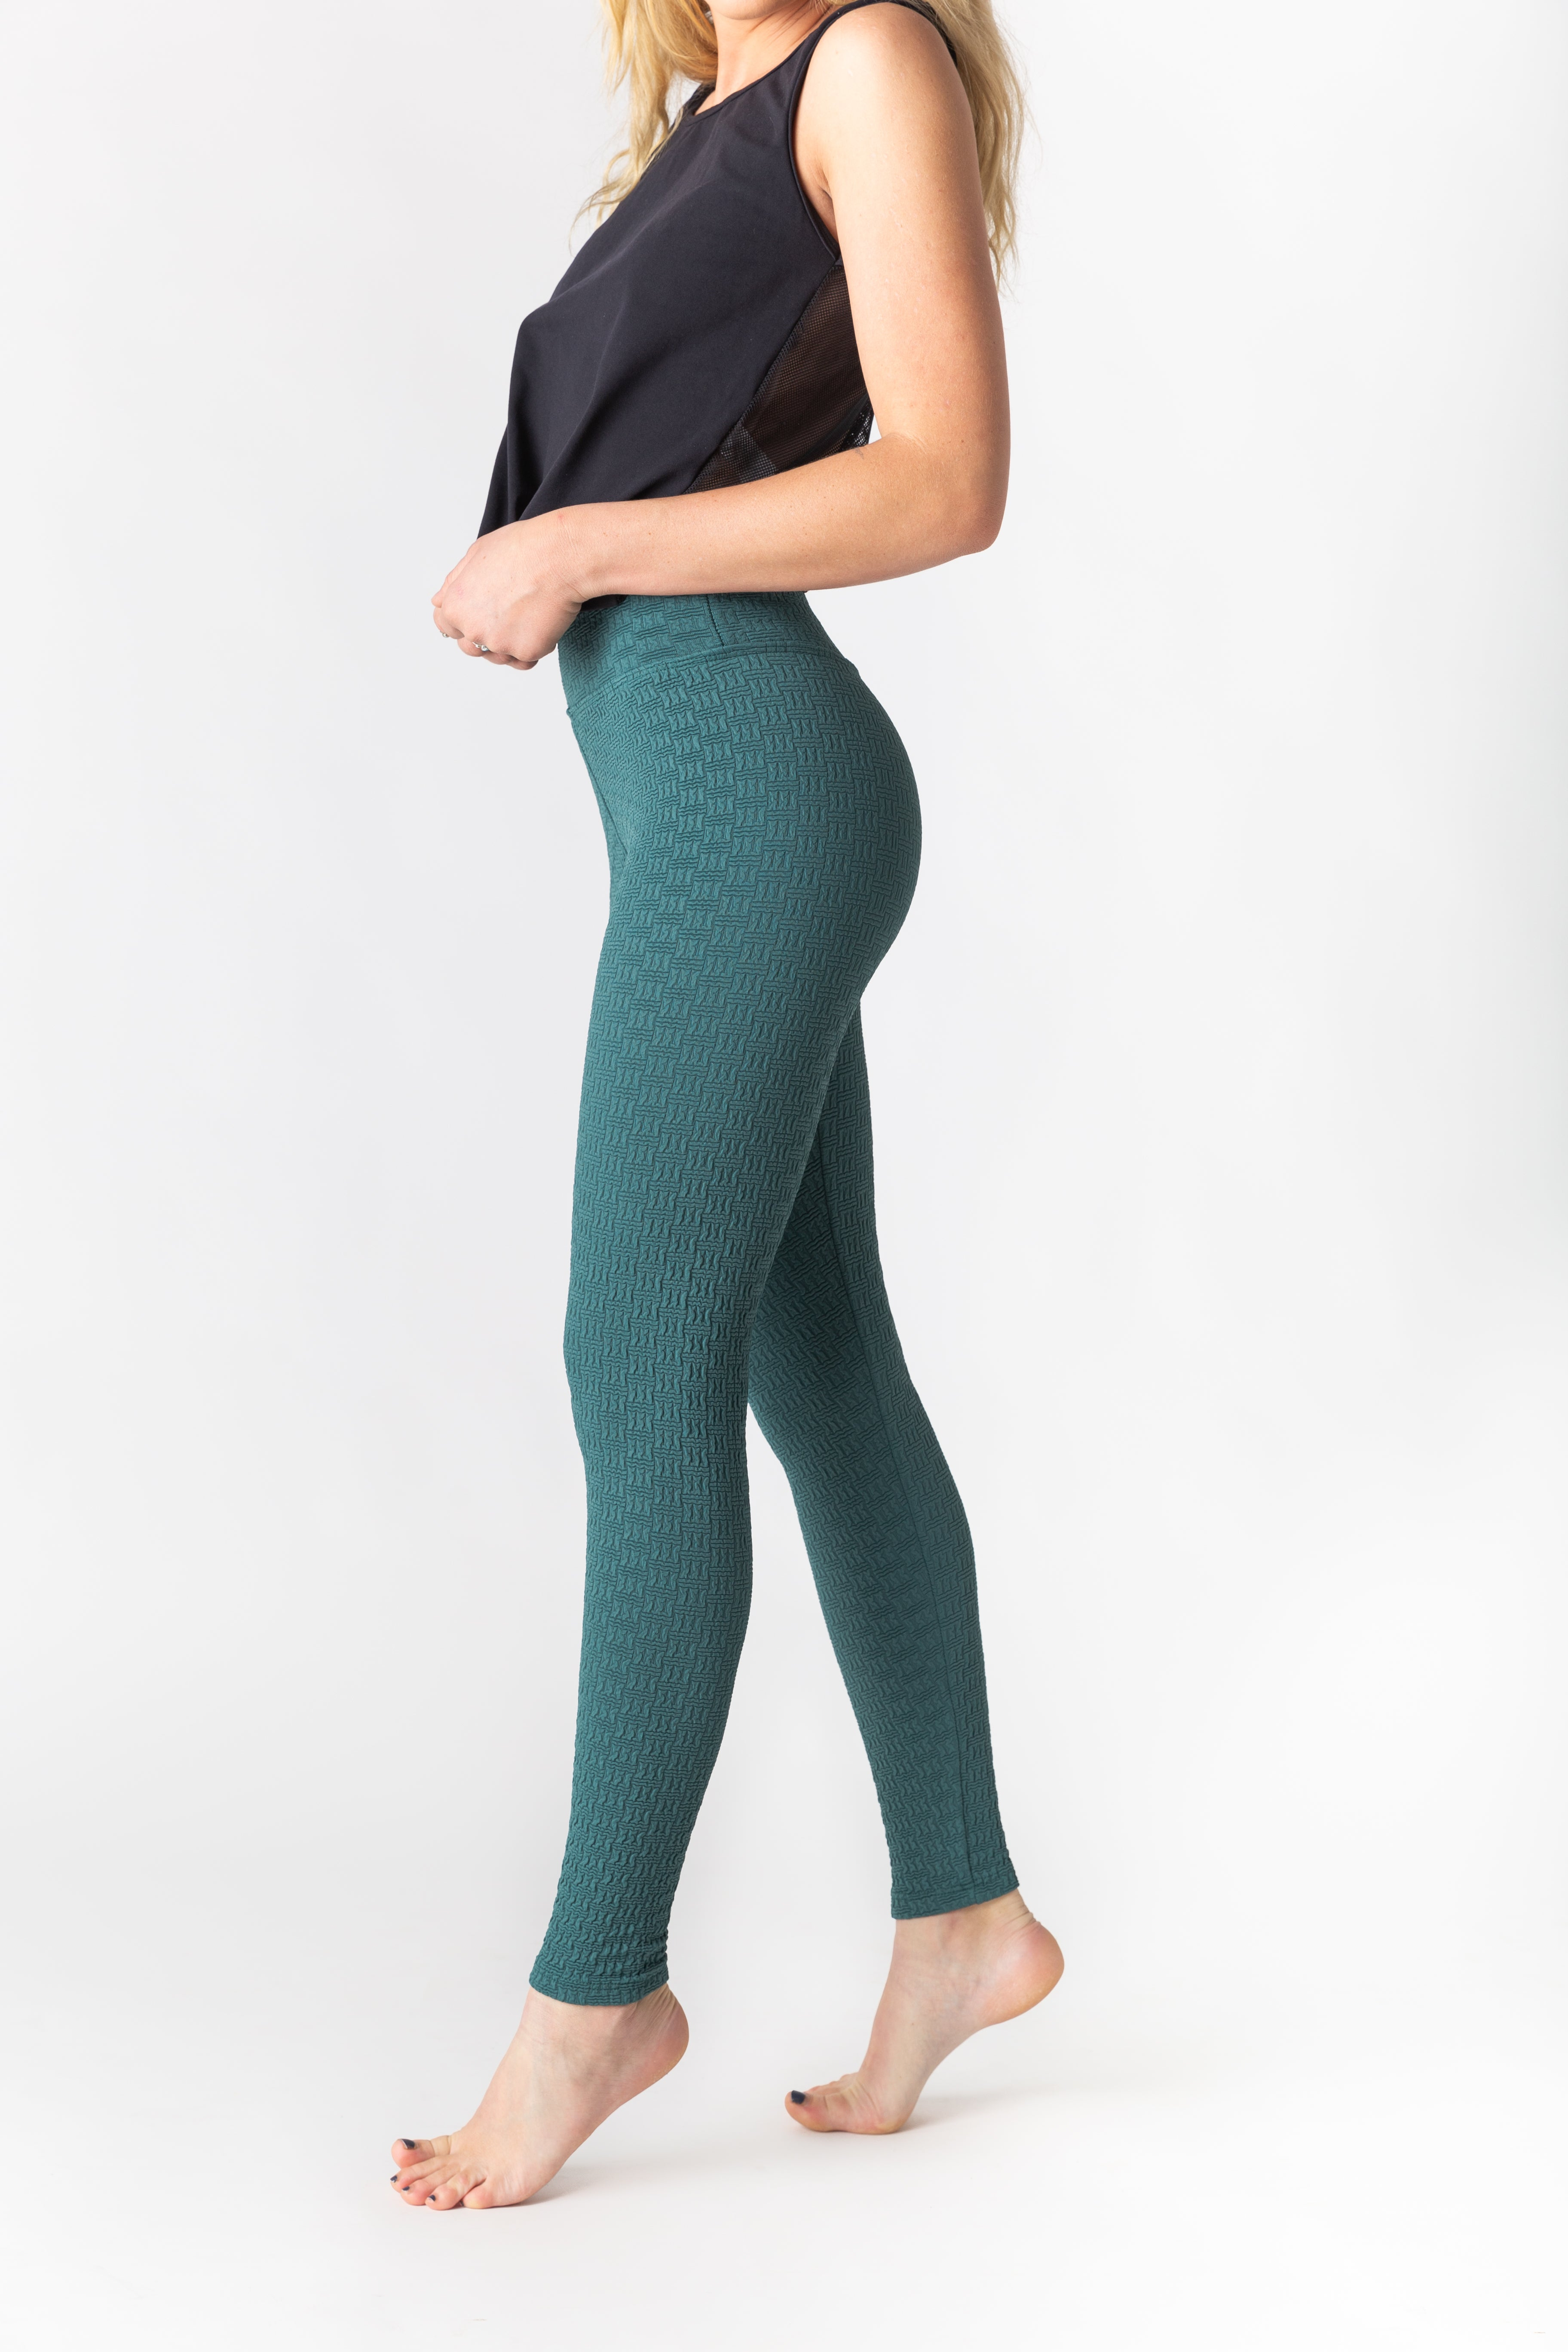 8bdde01008bd7a Brazil Pants - The Best Workout and Athleisure Pants Made in Brazil.